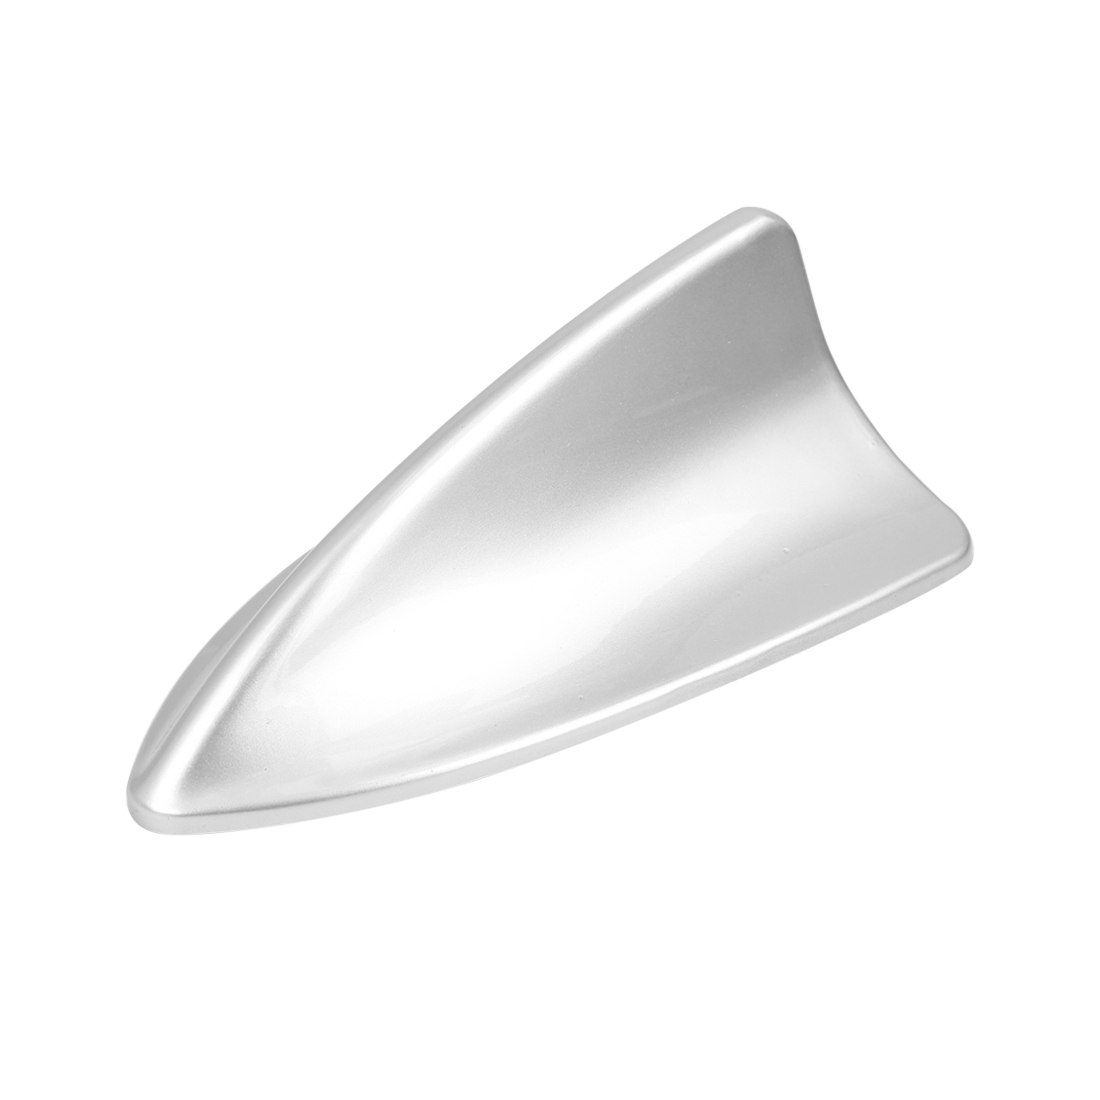 Car Plastic Shark Fin Shape Roof Decorative Decorate Antenna Aerial Silver Tone